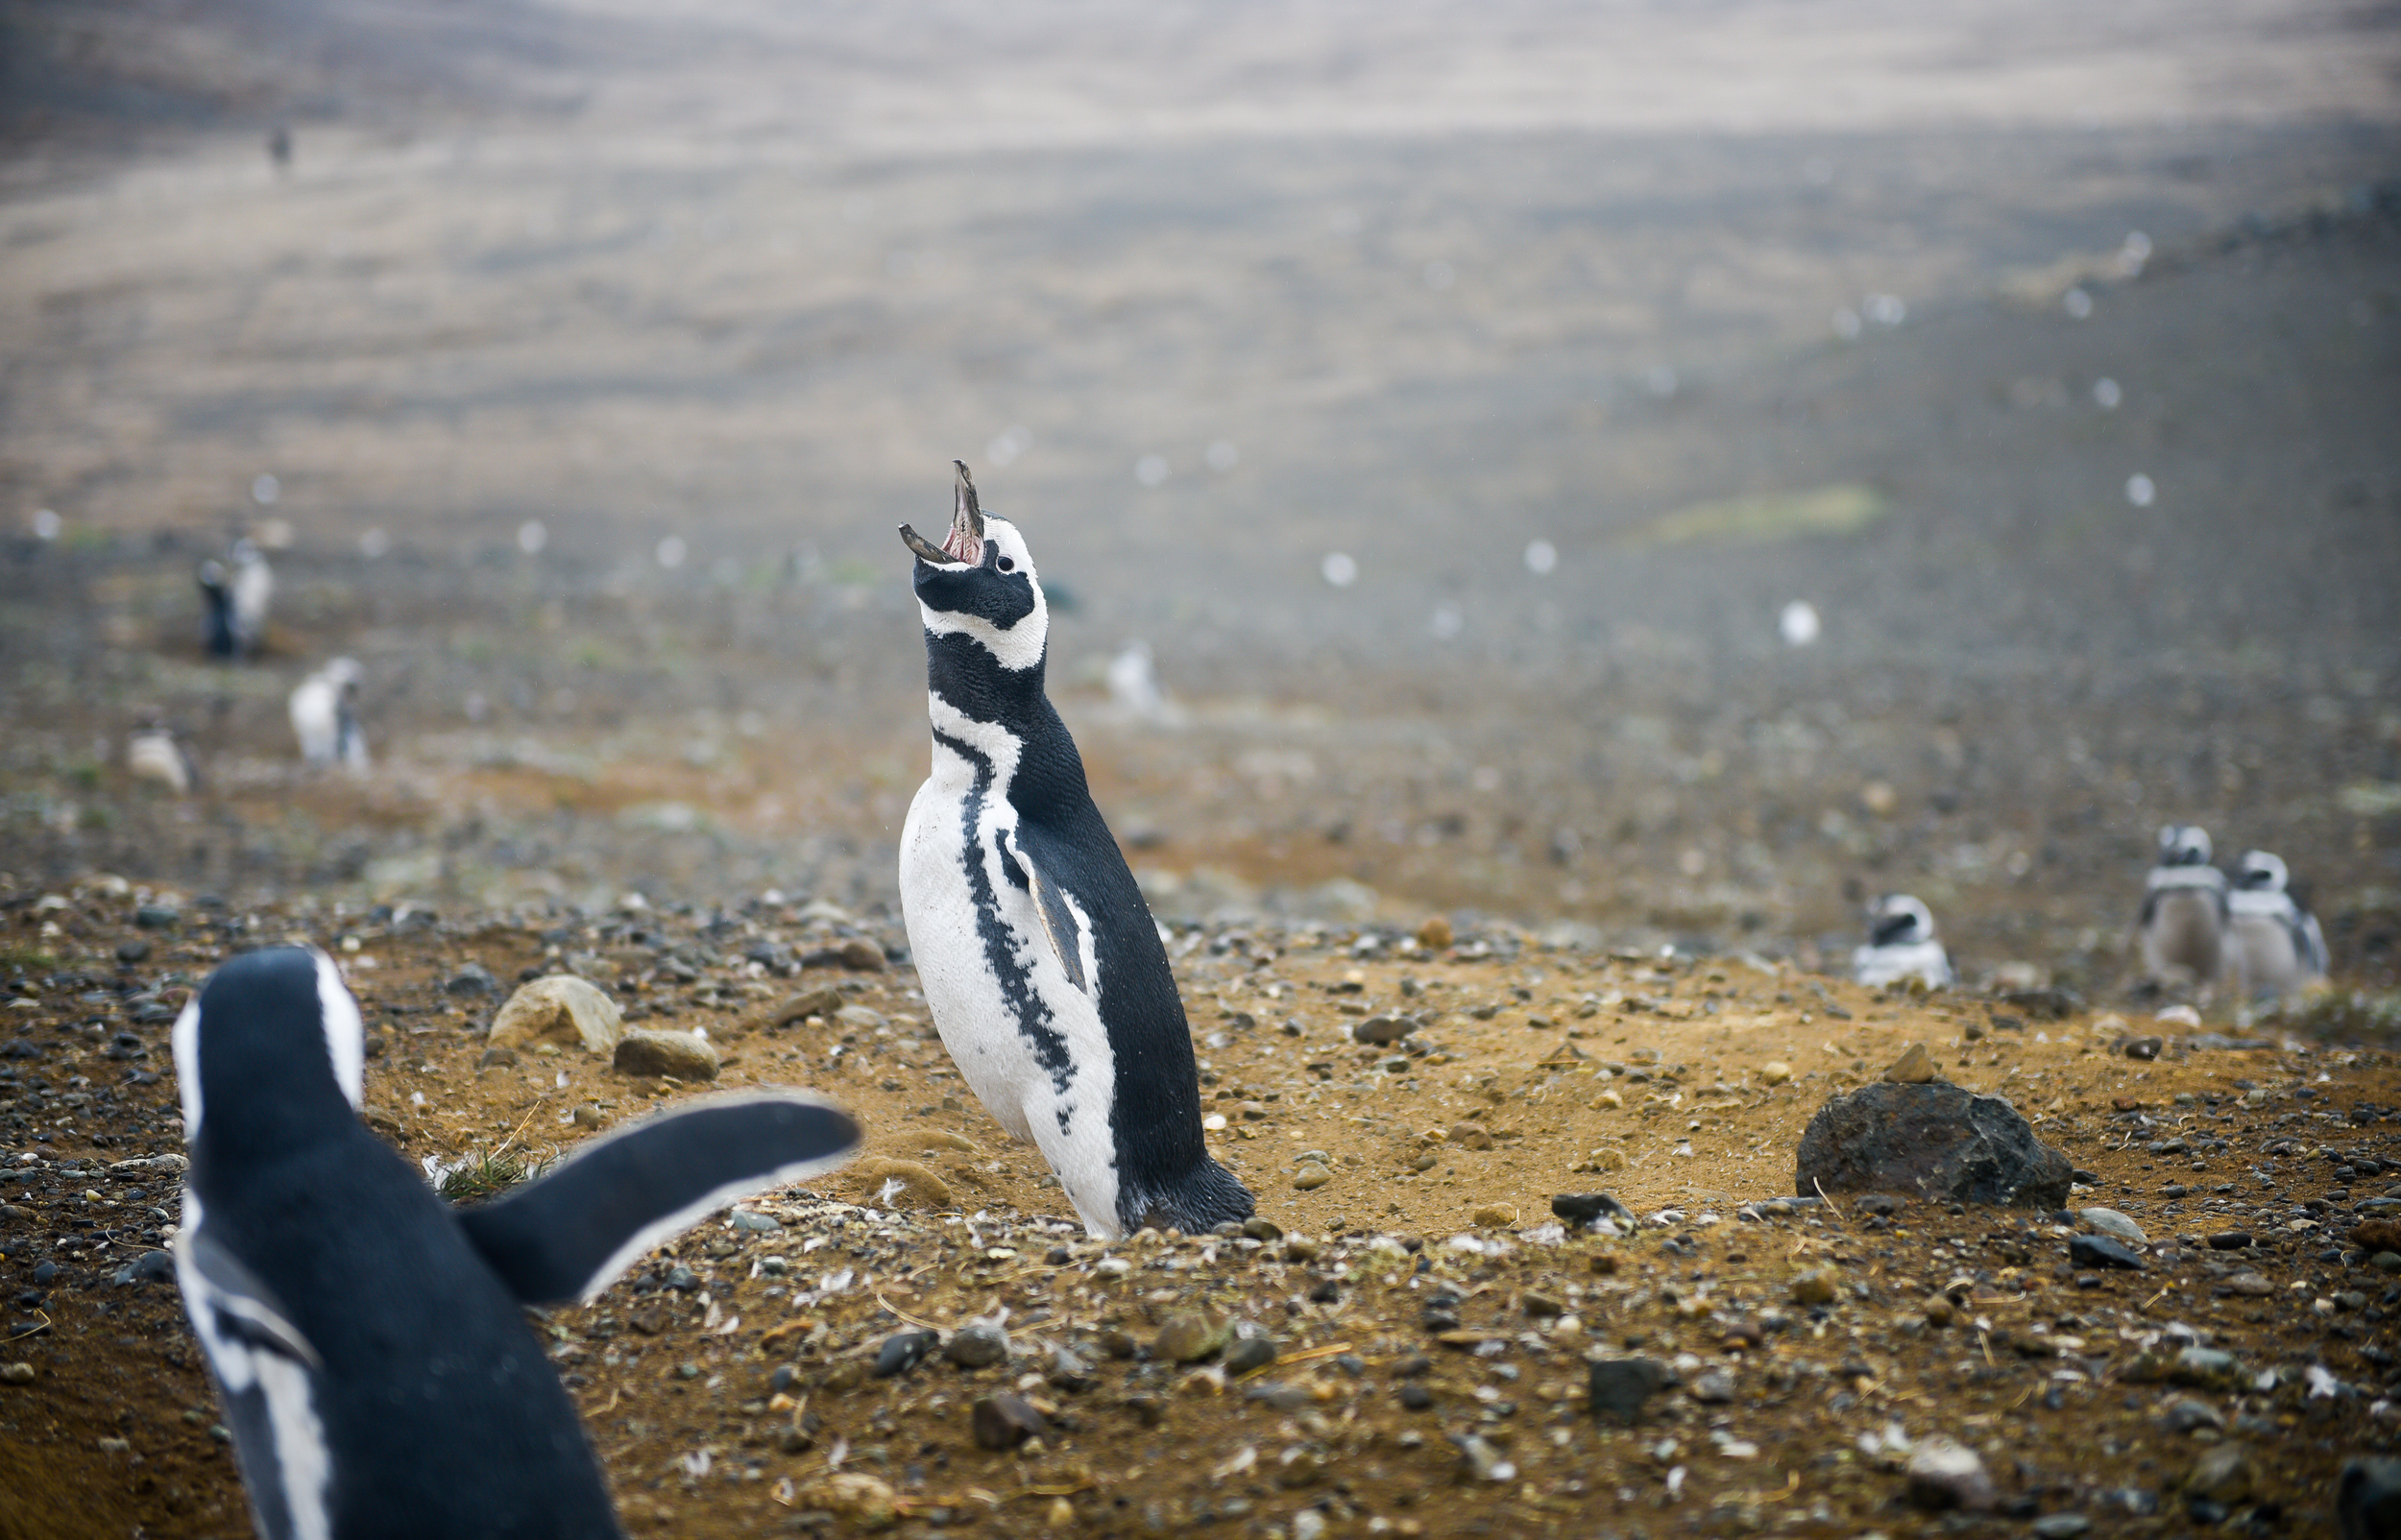 The Magellanic penguin produces a loud, mournful call, similar to that of a donkey bray. This is used most commonly by the males when seeking a mate, but also during other activities such as territorial disputes.